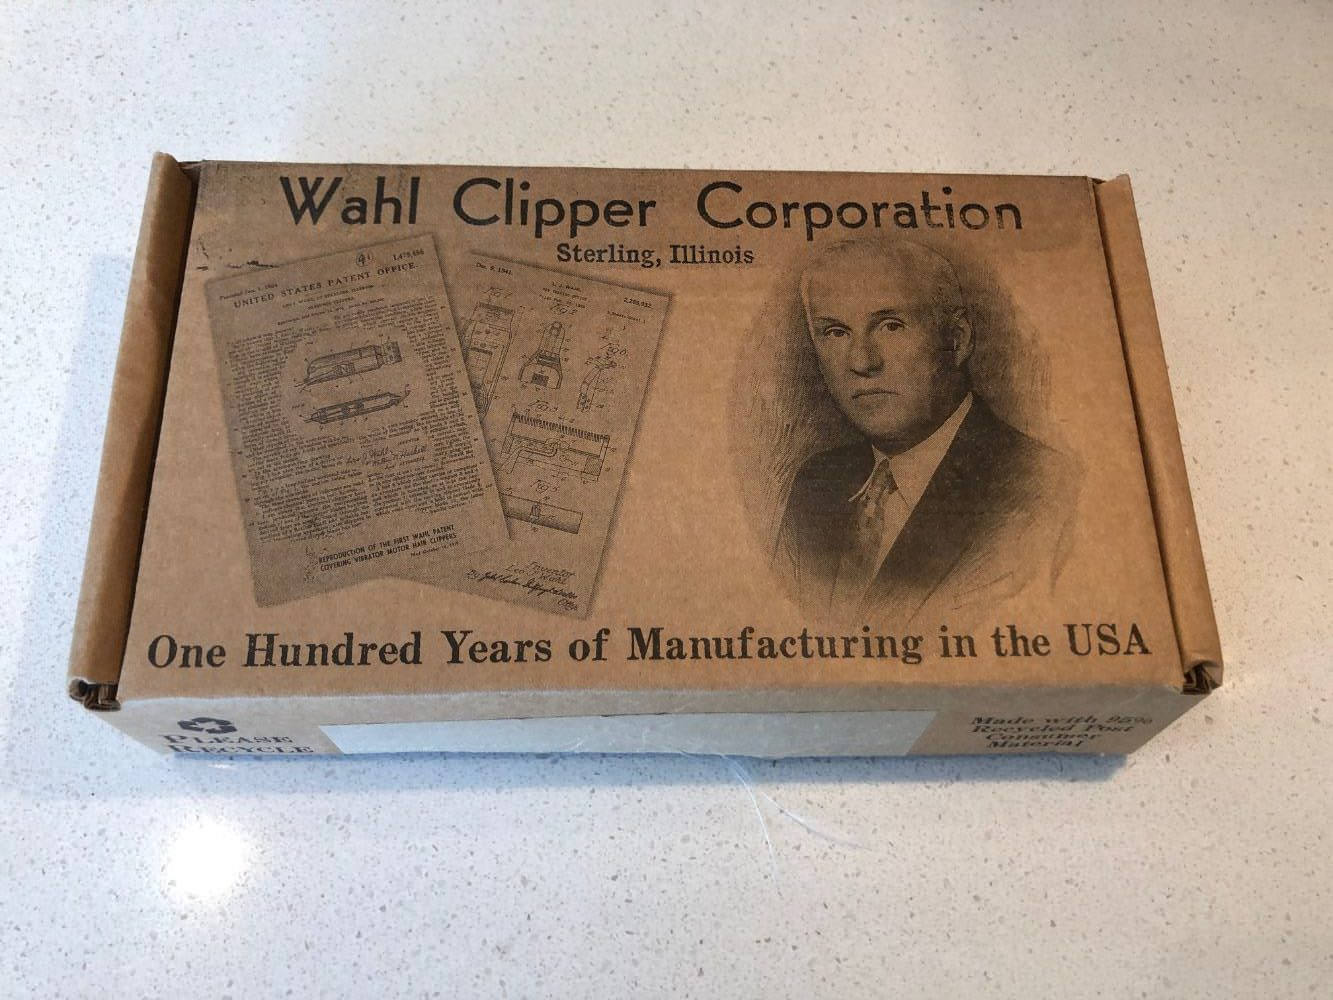 Wahl Clipper Corporation packaging